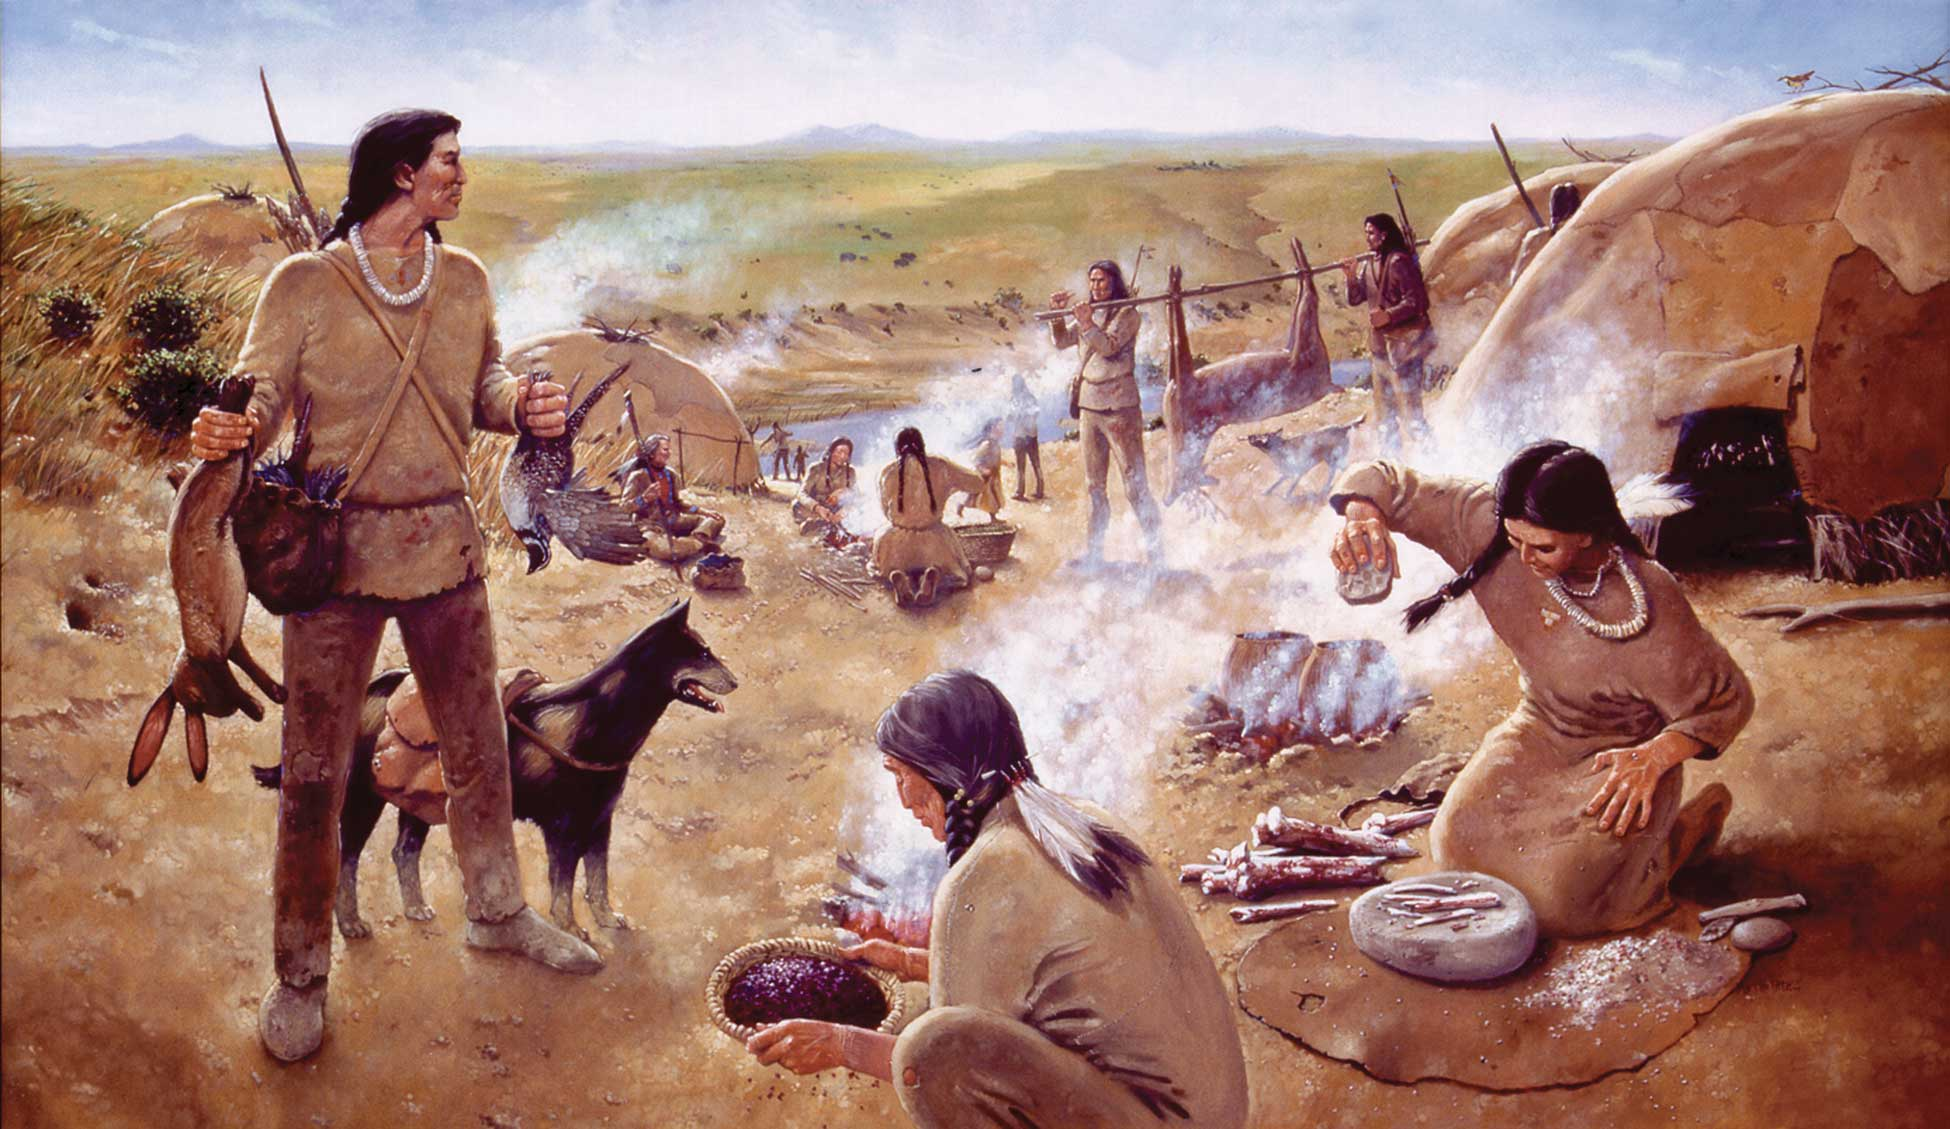 an introduction to the history and culture of the mandan indians This web site is to describe the american indian horse  villages of the mandan and hidatsa and  the plains indian culture for more see history 1800-1890.